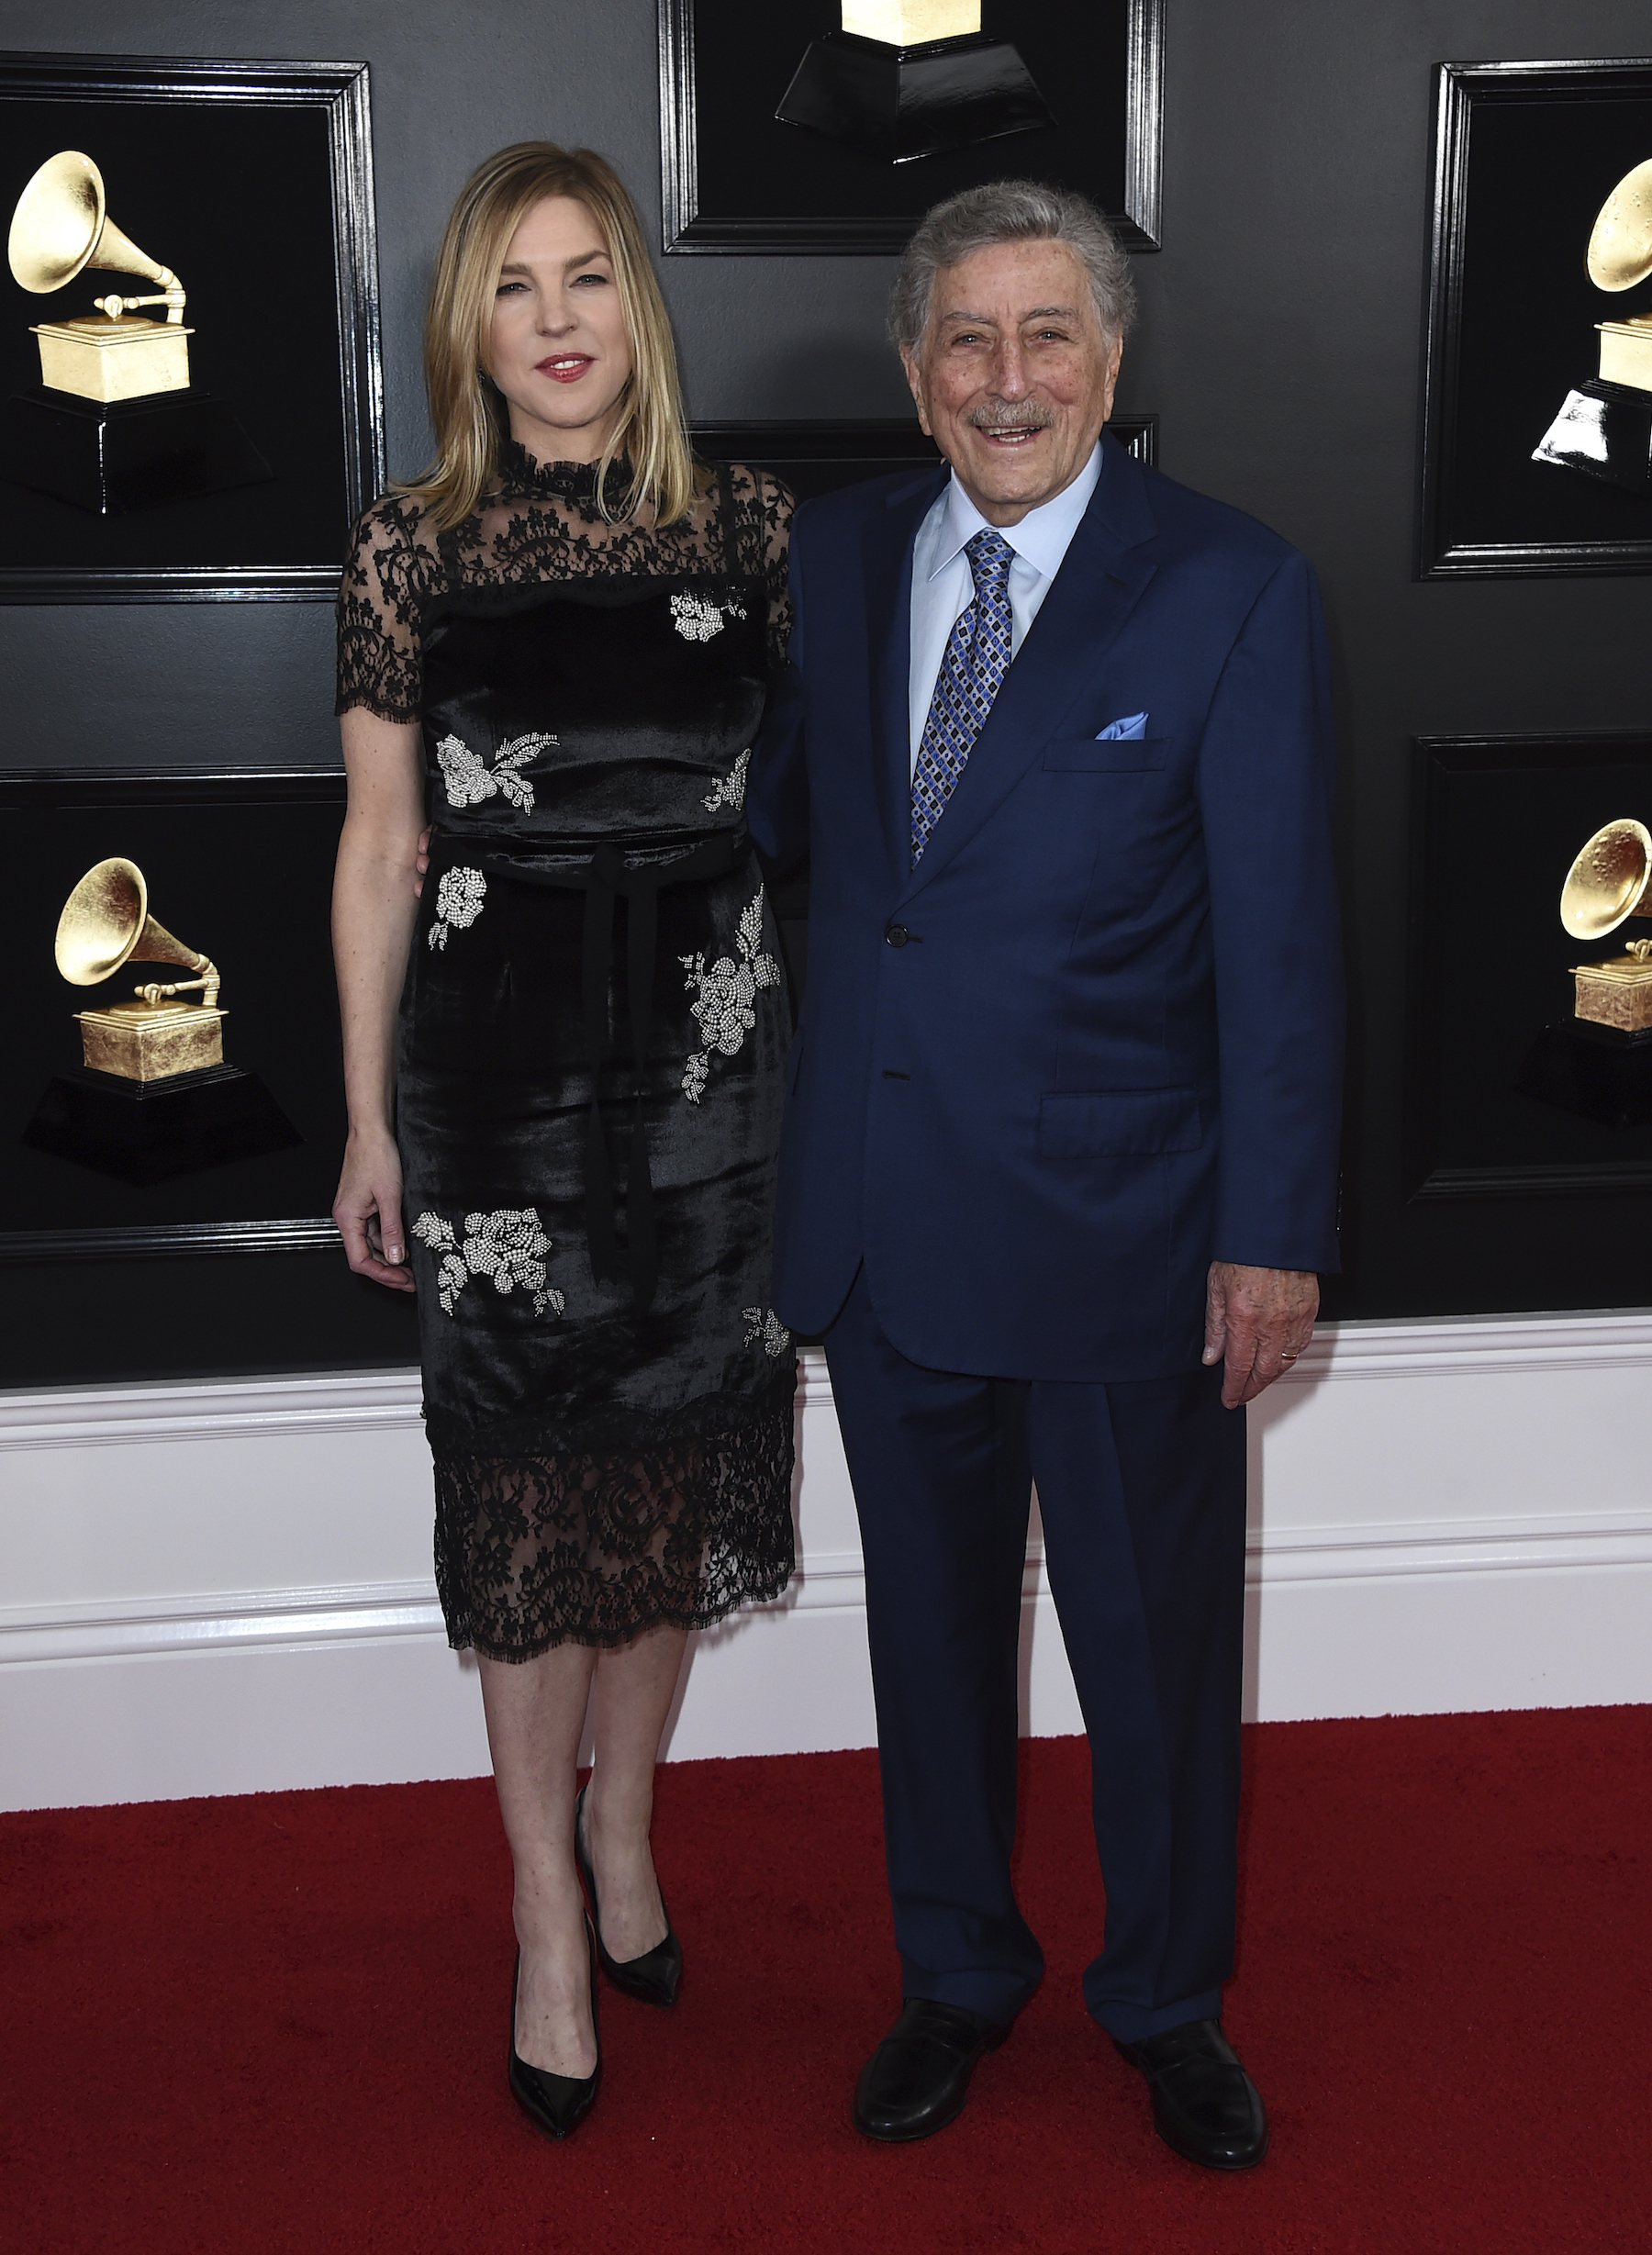 "<div class=""meta image-caption""><div class=""origin-logo origin-image ap""><span>AP</span></div><span class=""caption-text"">Diana Krall, left, and Tony Bennett arrive at the 61st annual Grammy Awards at the Staples Center on Sunday, Feb. 10, 2019, in Los Angeles. (Jordan Strauss/Invision/AP)</span></div>"